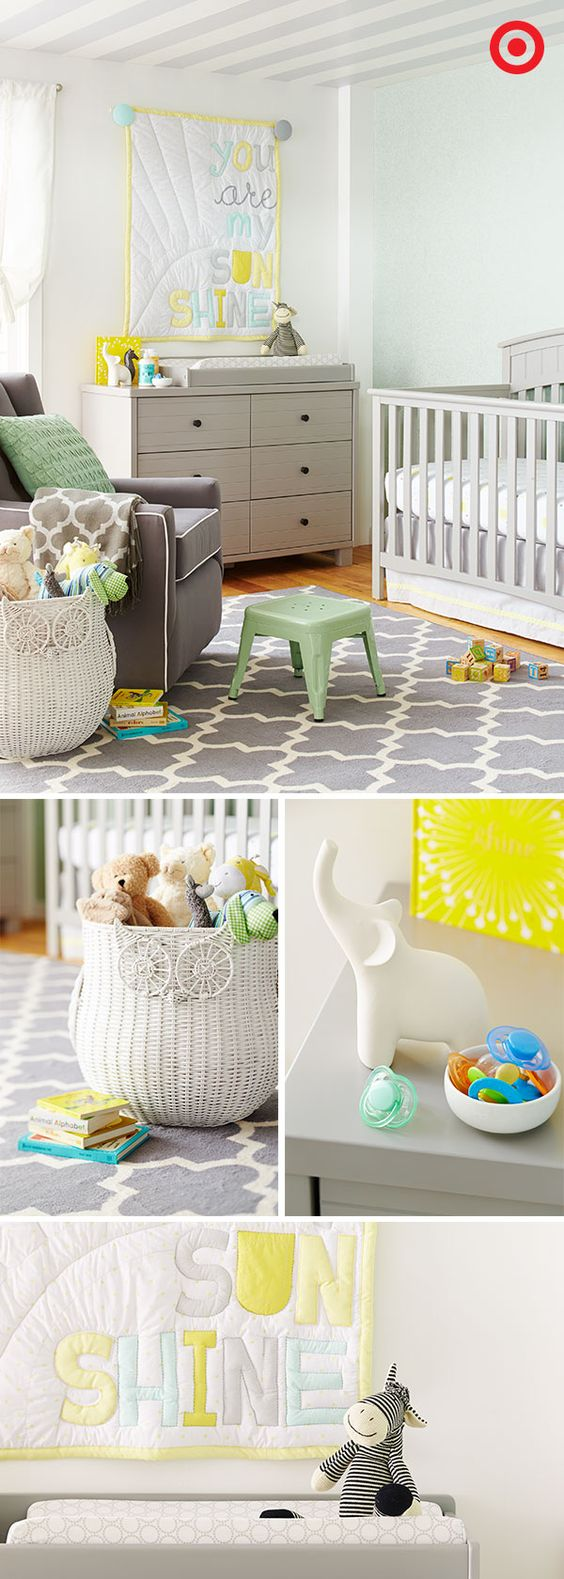 Keeping Baby's gender a surprise? Decorate the nursery in neutral colors so it works perfectly for a boy or girl. The Circo You Are My Sunshine Crib Bedding Set features soft grays, greens and yellows, and has a sweet little sunshine on each piece. The white owl basket, ceramic elephant and mini bowl are cute, useful pieces to store all the necessities, from toys and blankets to pacifiers and more.: